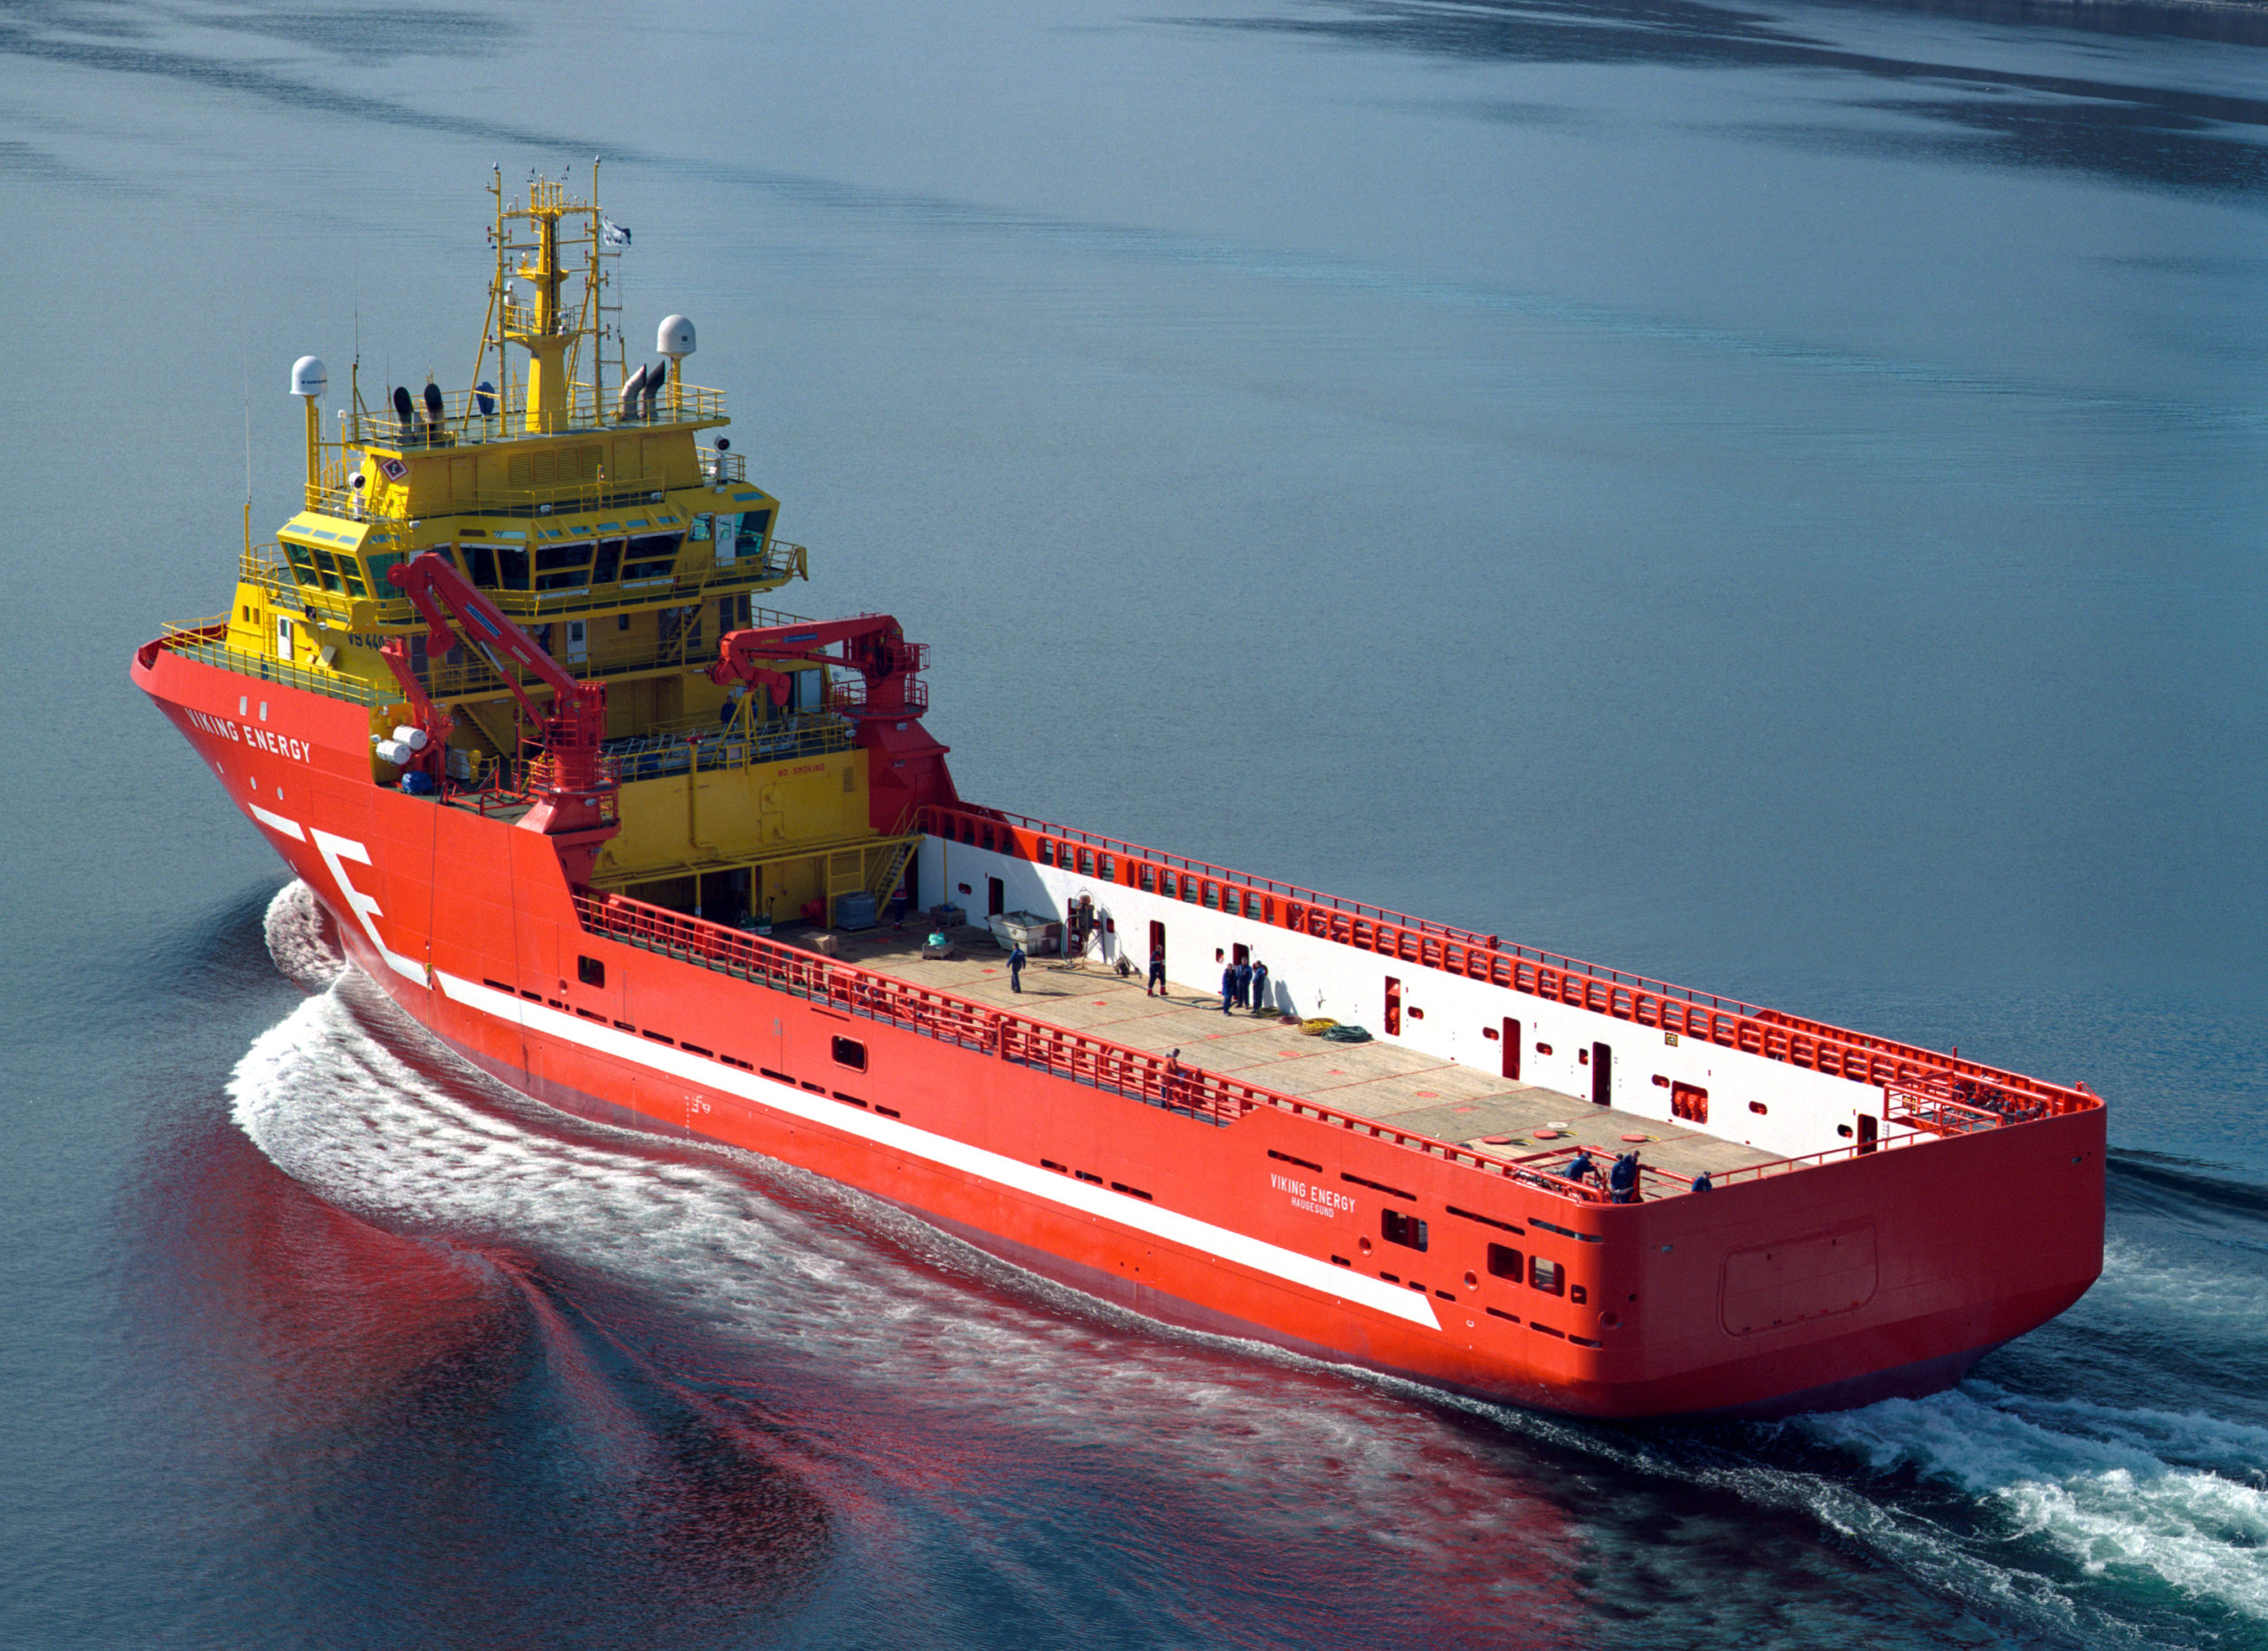 Aerial photo of red supply ship called Viking Energy underway at sea, to illustrate Cloverly post about using ammonia as a carbon-free fuel